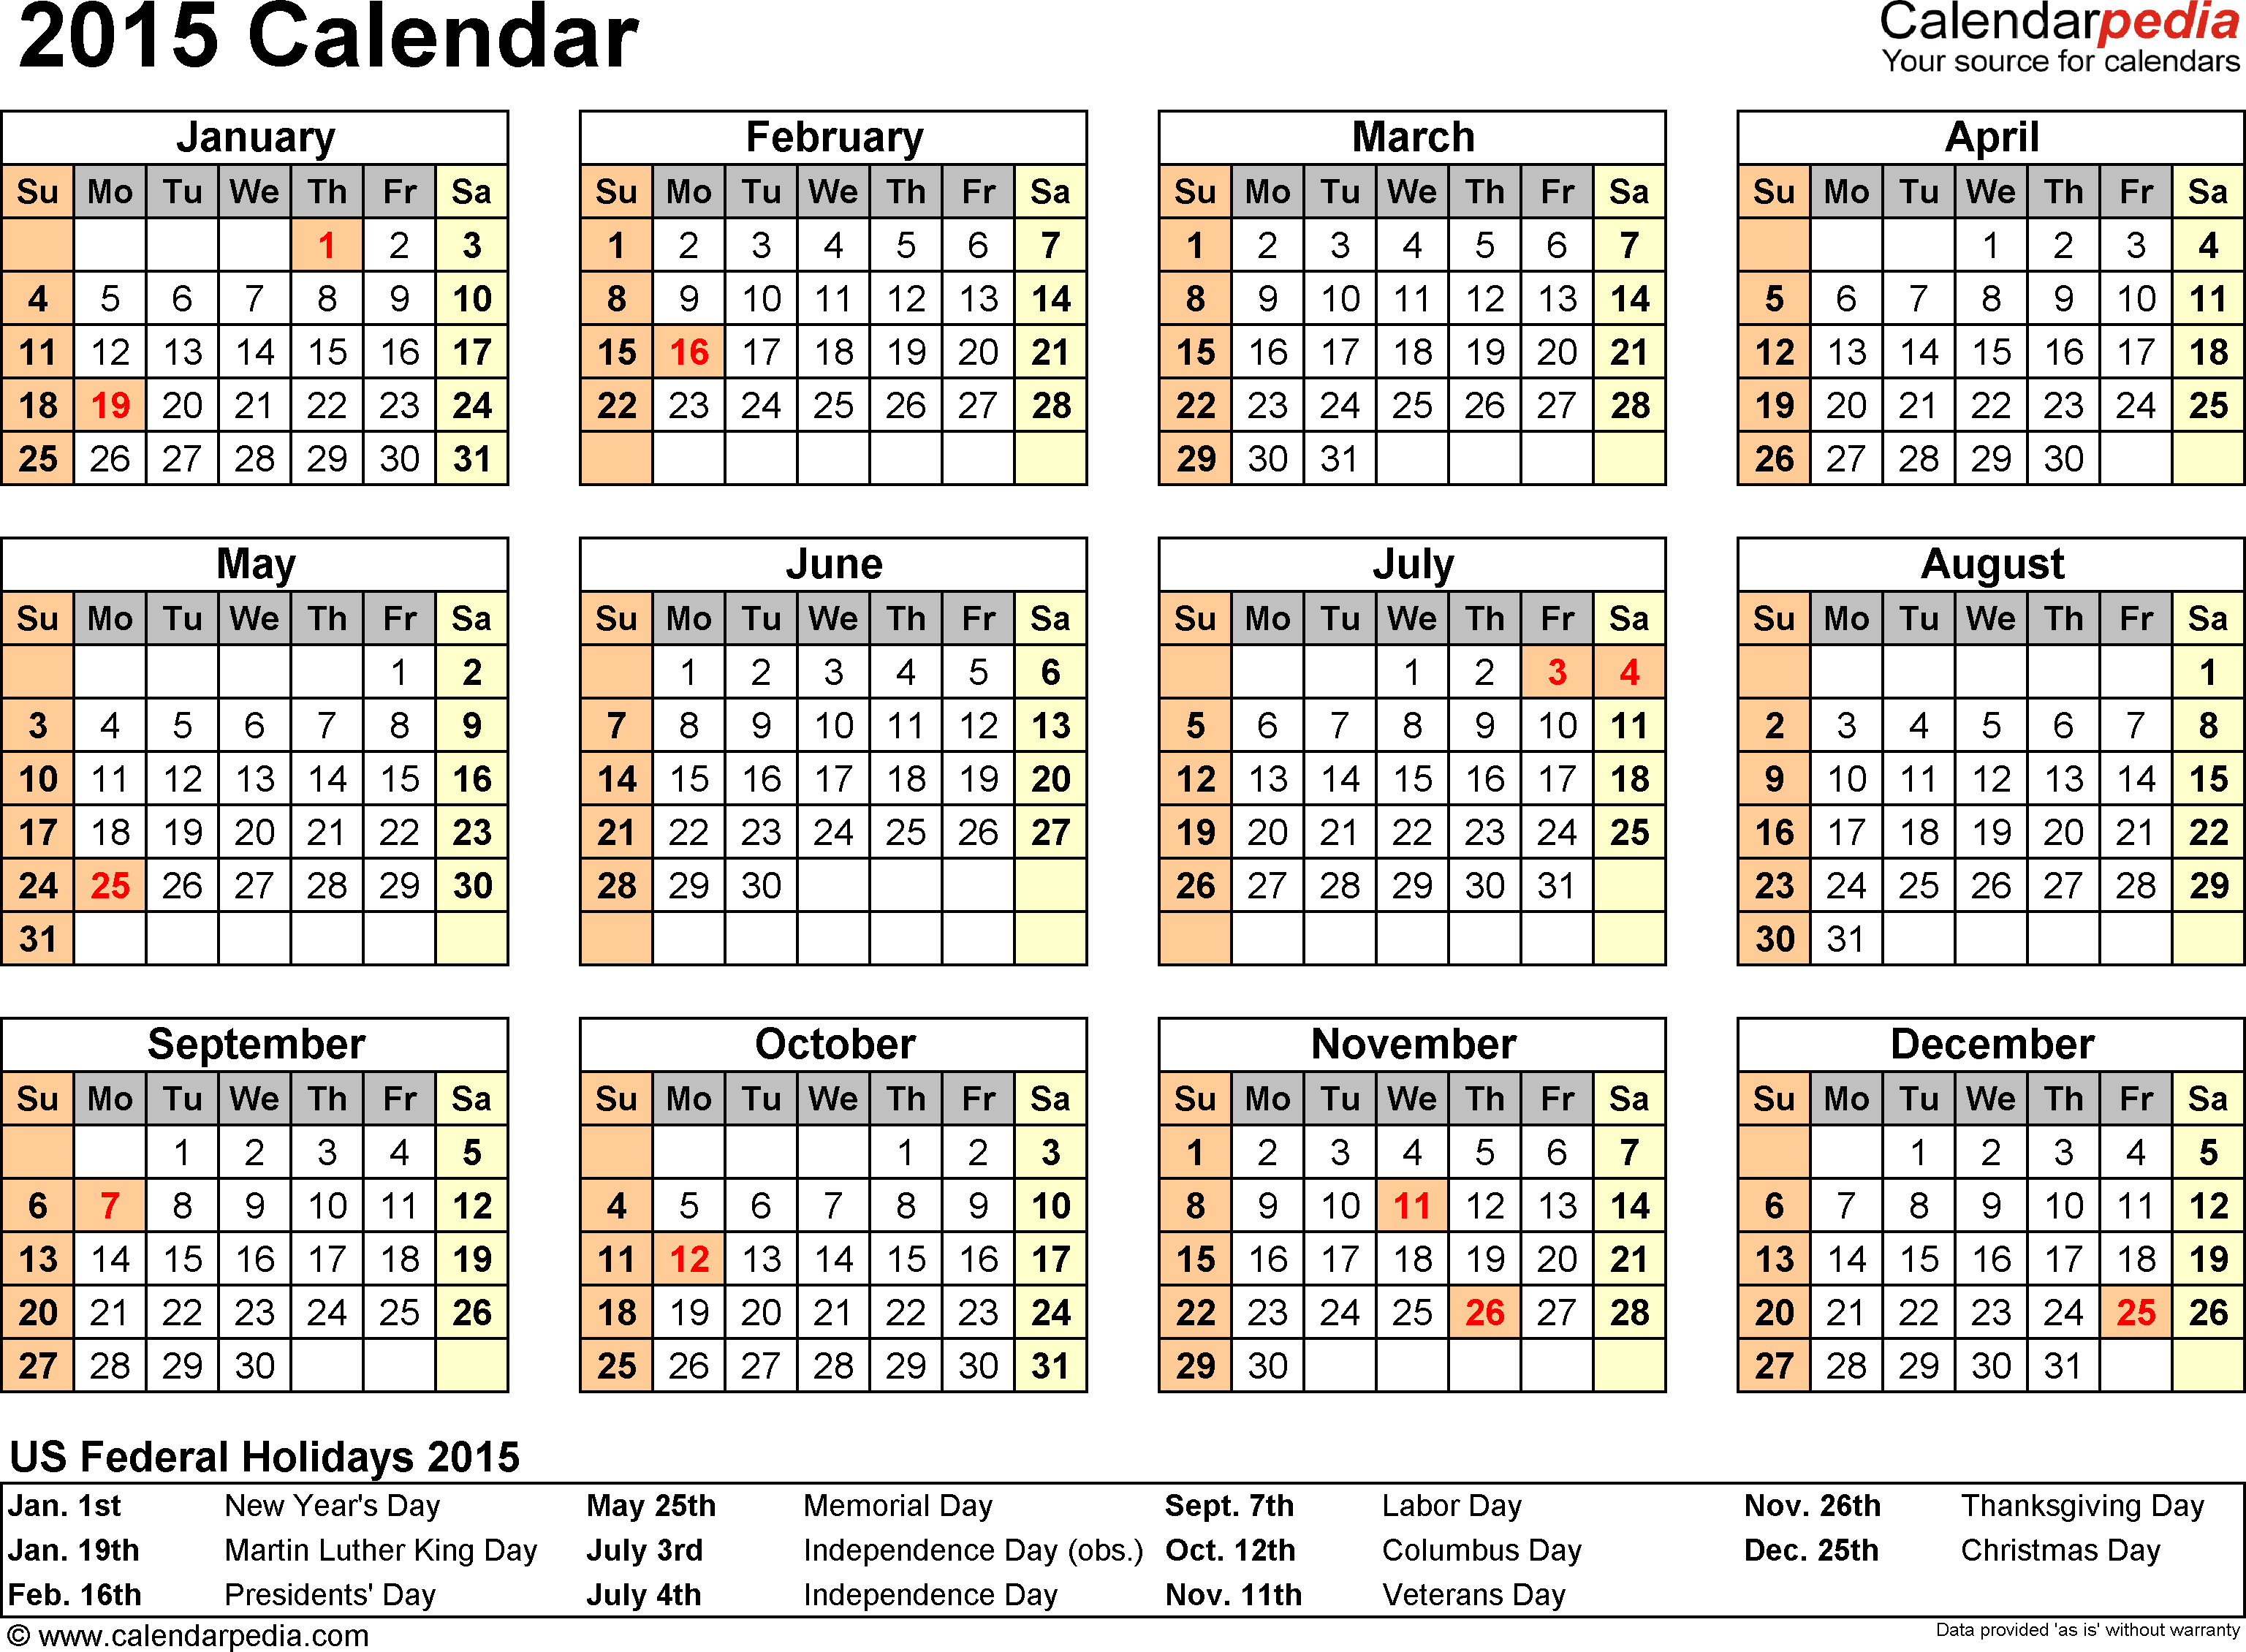 Template 8: 2015 Calendar for Excel, year at a glance, 1 page